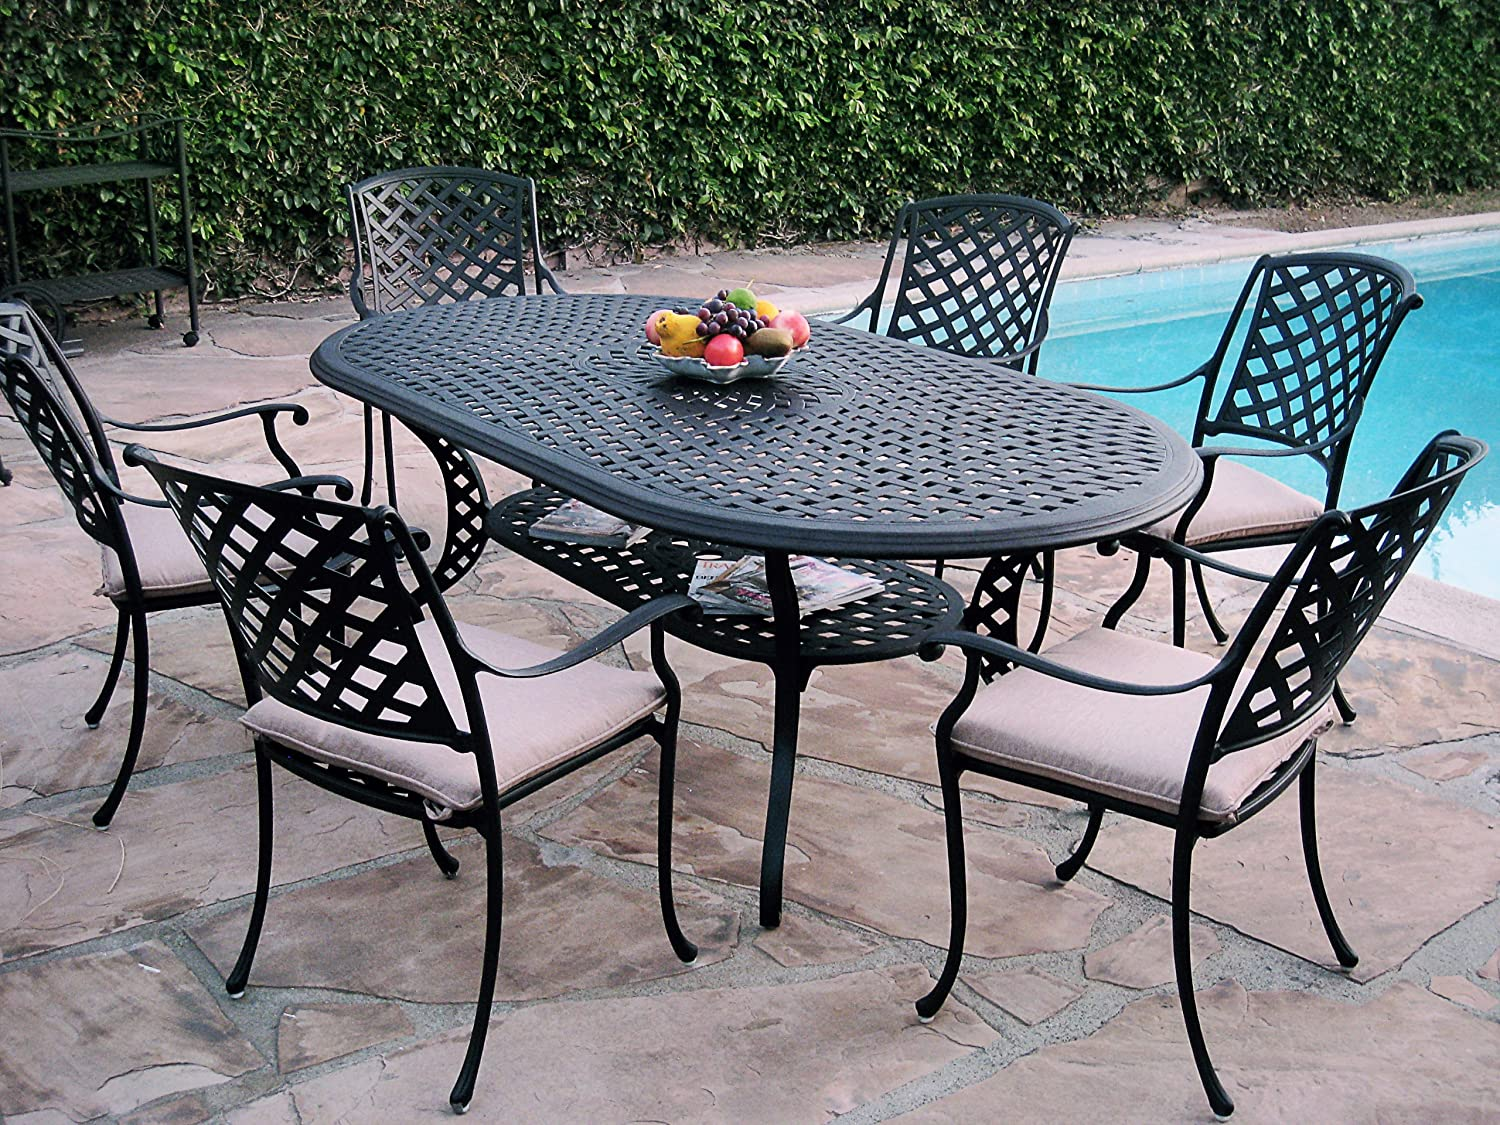 Aluminum Lawn Chairs 7 Piece Outdoor Patio Furniture Cast Aluminum Dining Set